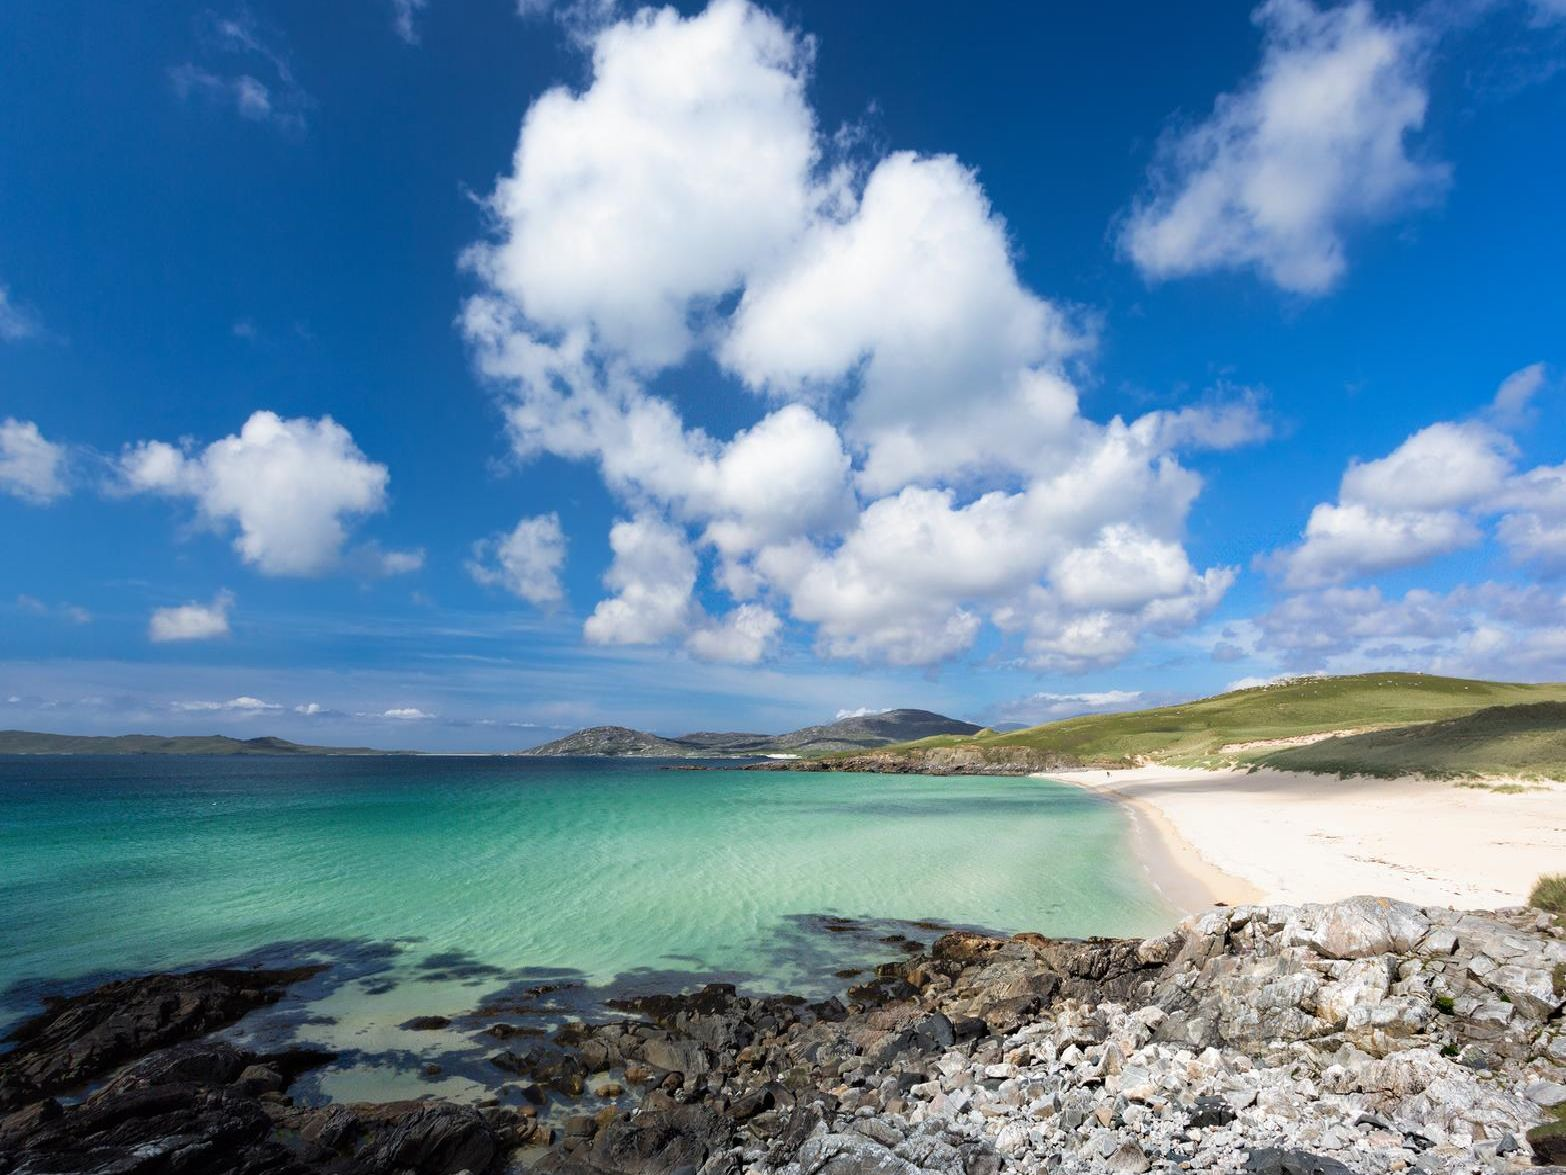 10 of the best homes with private beaches to rent this summer in Scotland